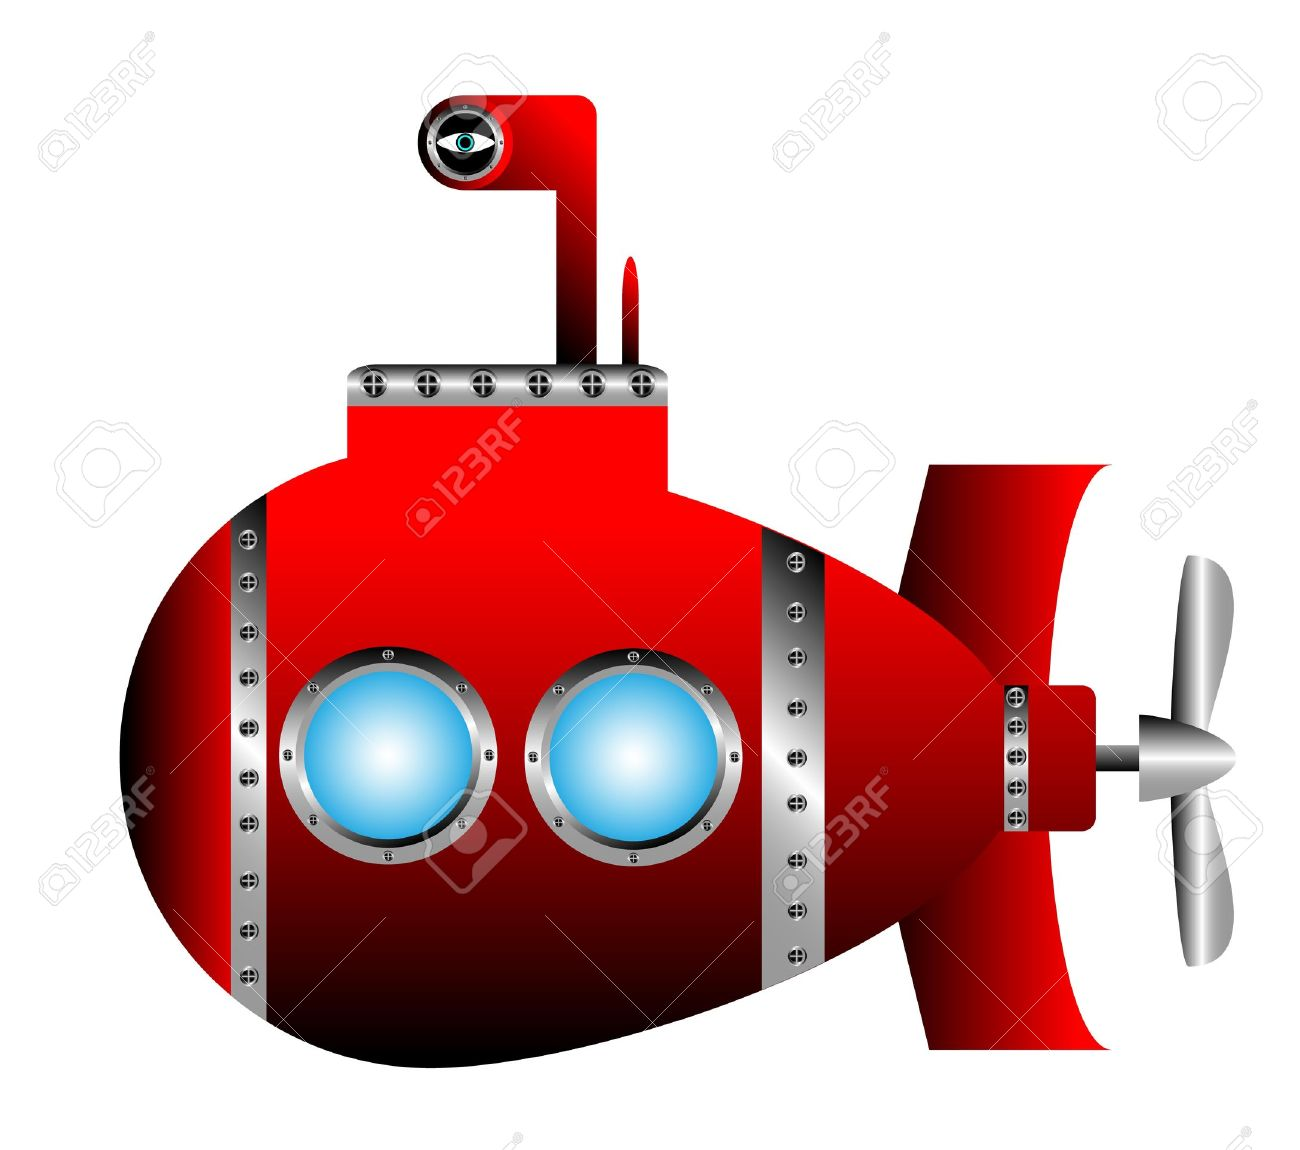 Jeu Alacon - Page 20 10946117-red-submarine-on-white-background--vector-illustration